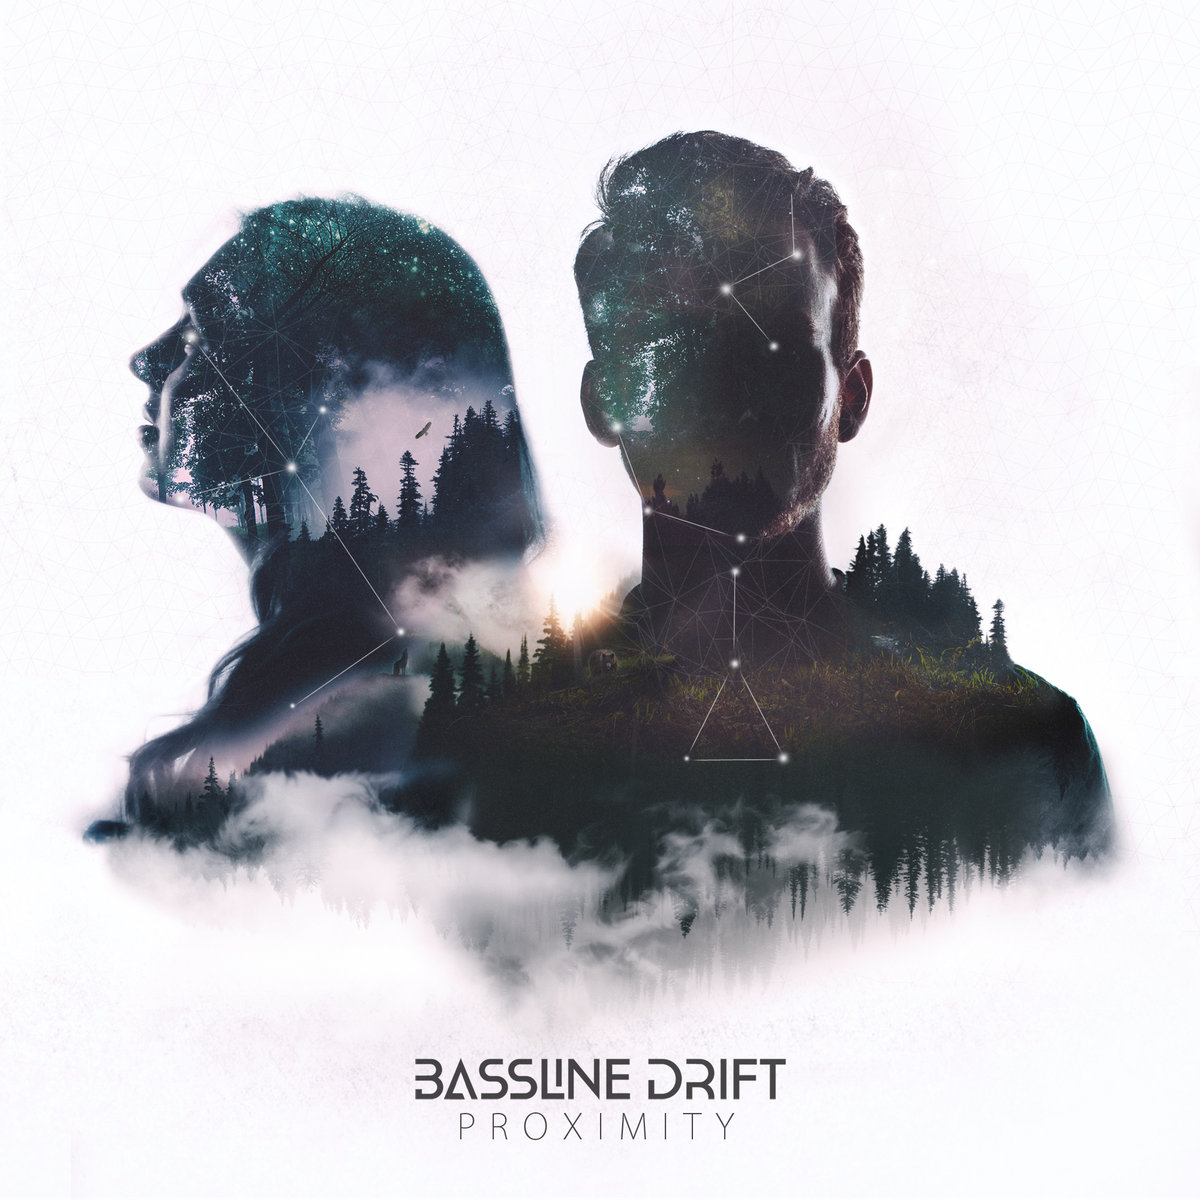 Bassline Drift - Your Heart Is Mine @ 'Proximity' album (downtempo, dubstep)